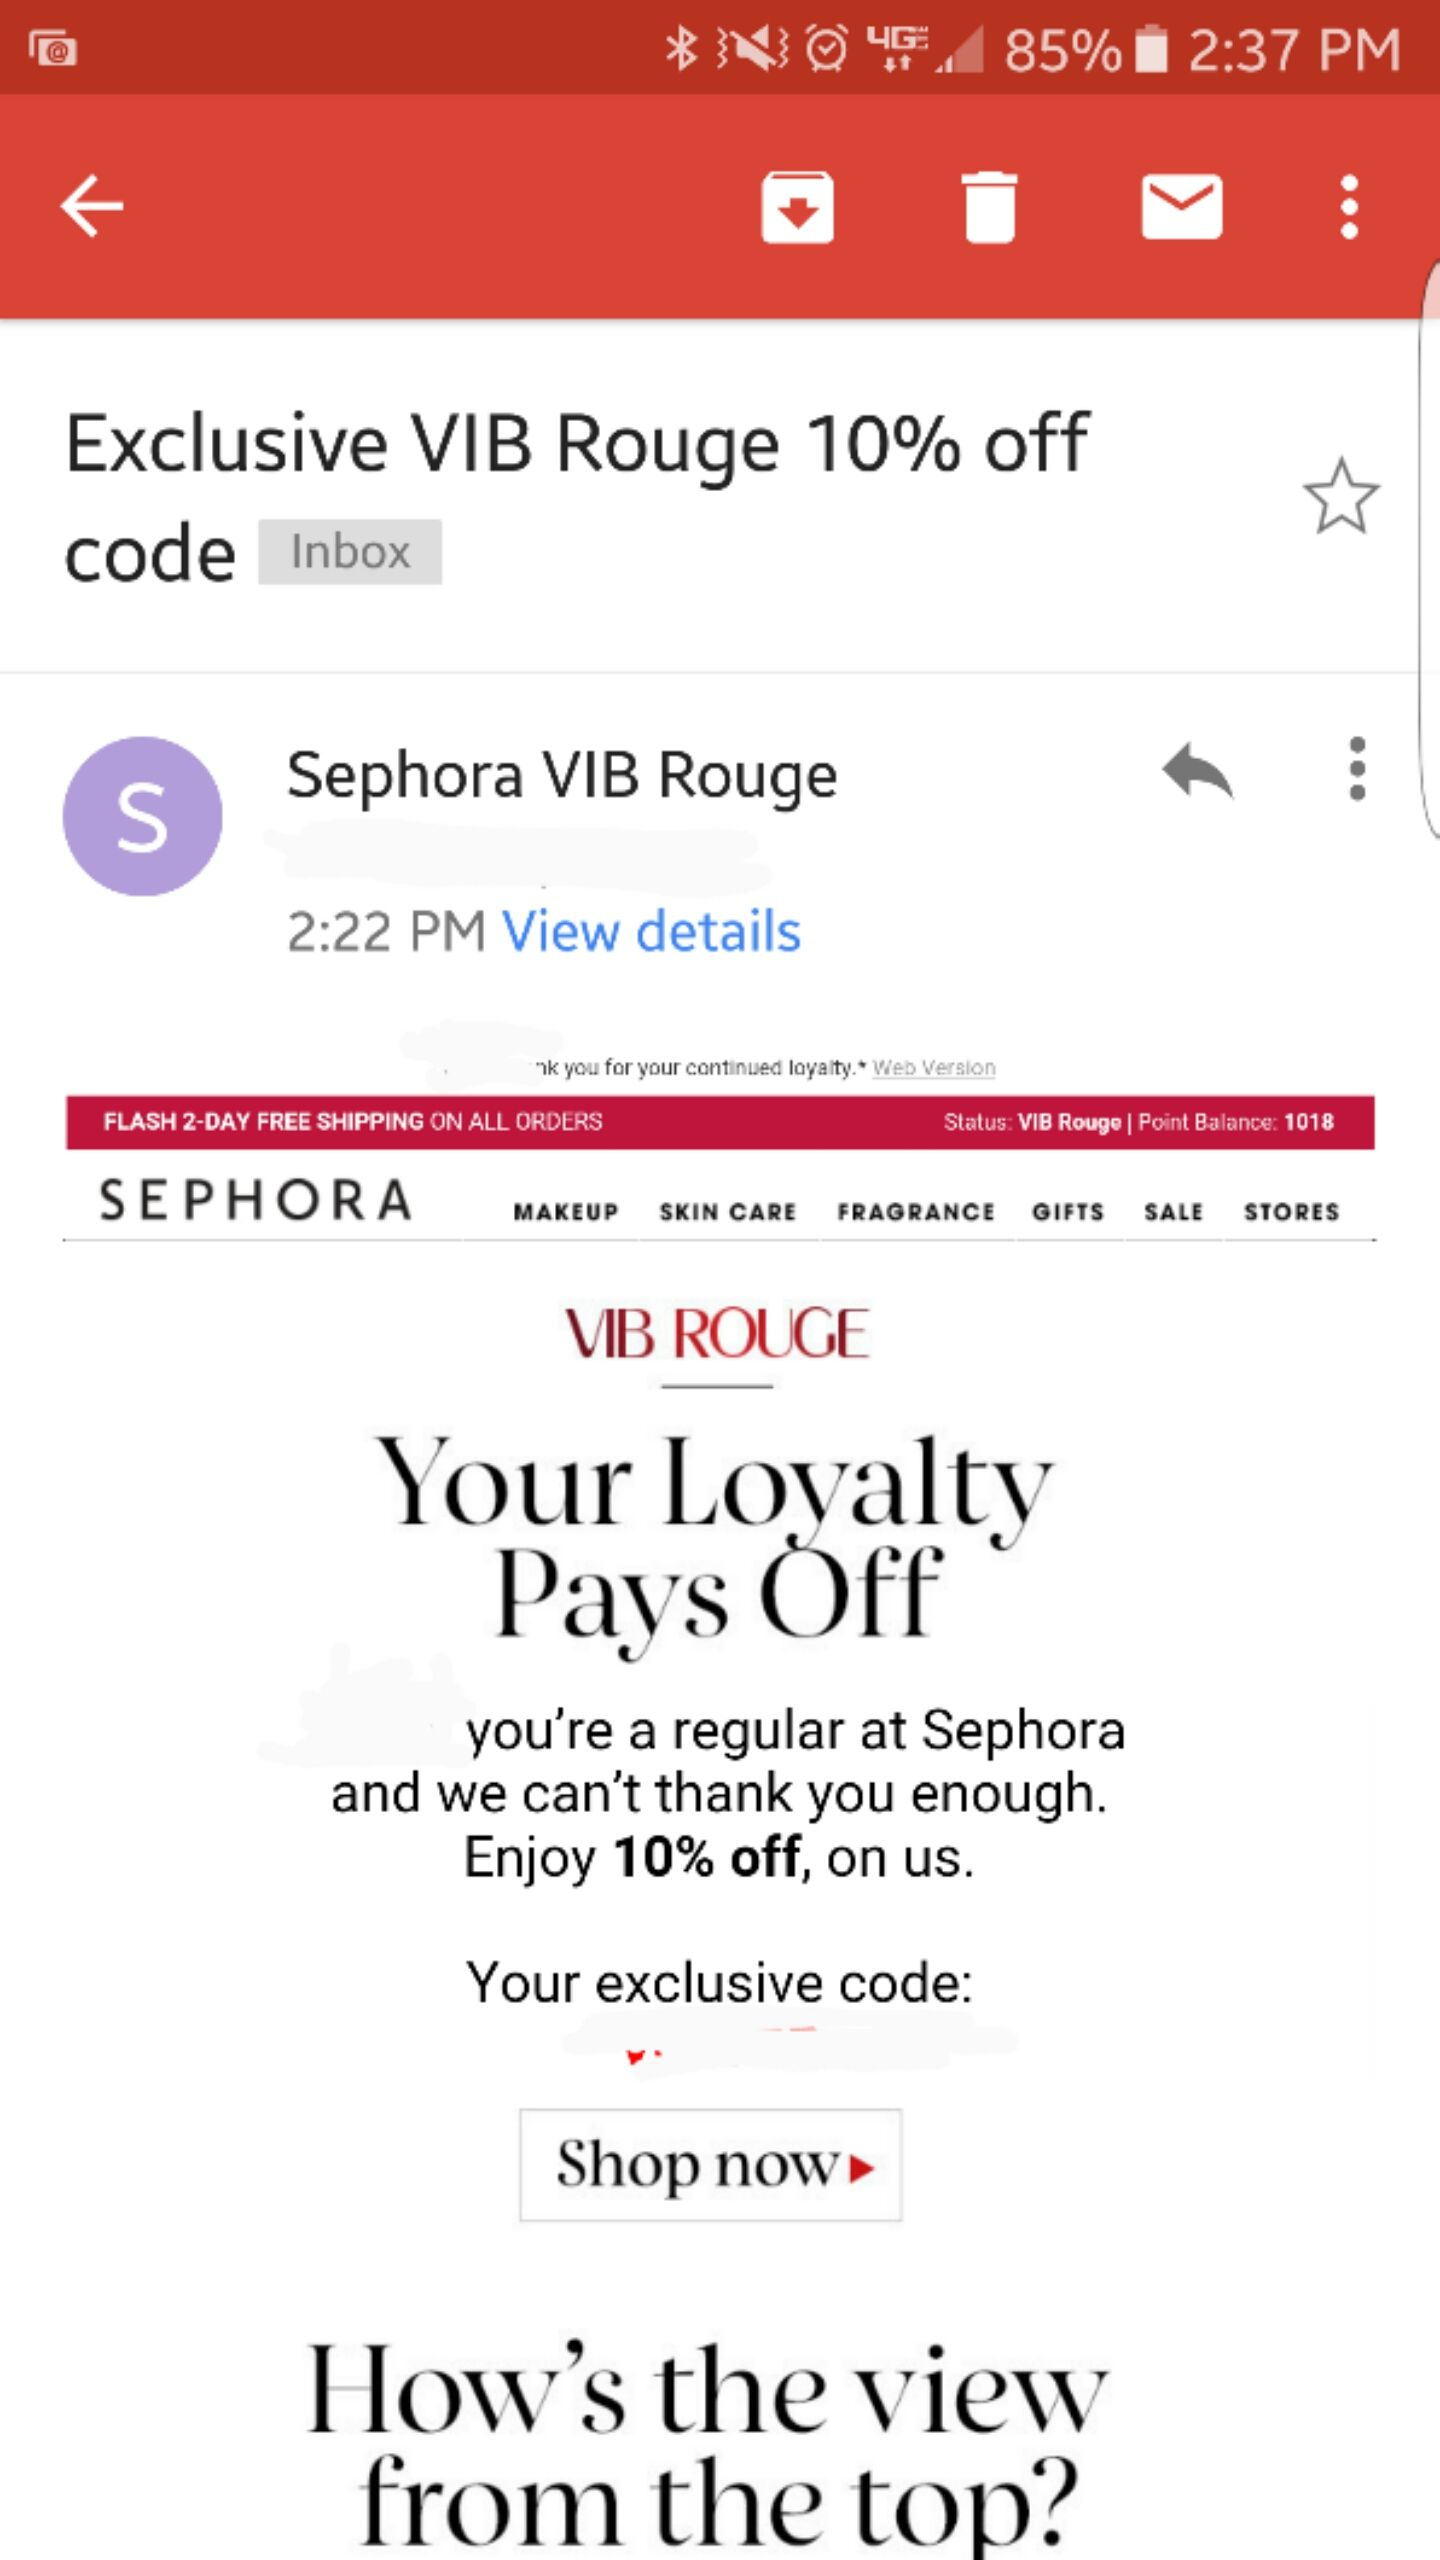 Sephora VIB Rouges: Anyone else receive a random 10% off email ...